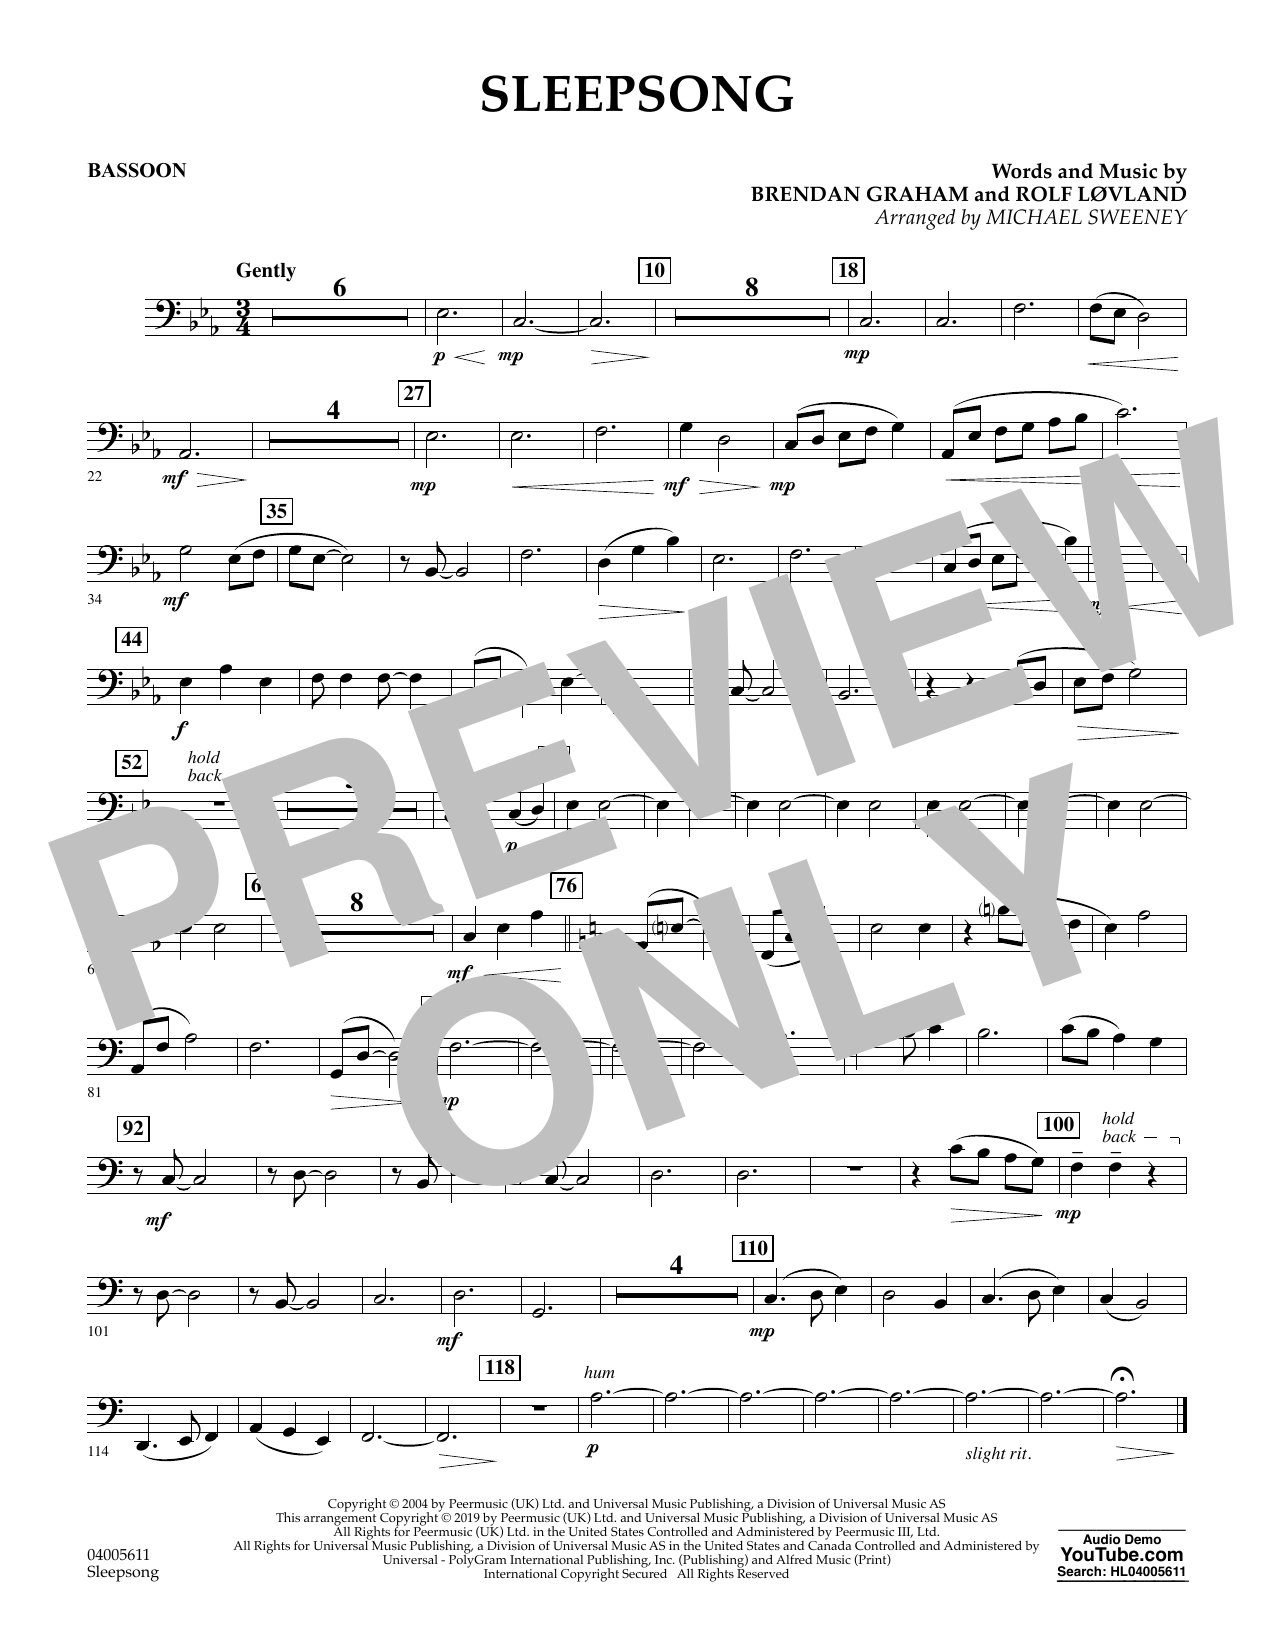 Secret Garden Sleepsong (arr. Michael Sweeney) - Bassoon sheet music preview music notes and score for Concert Band including 1 page(s)